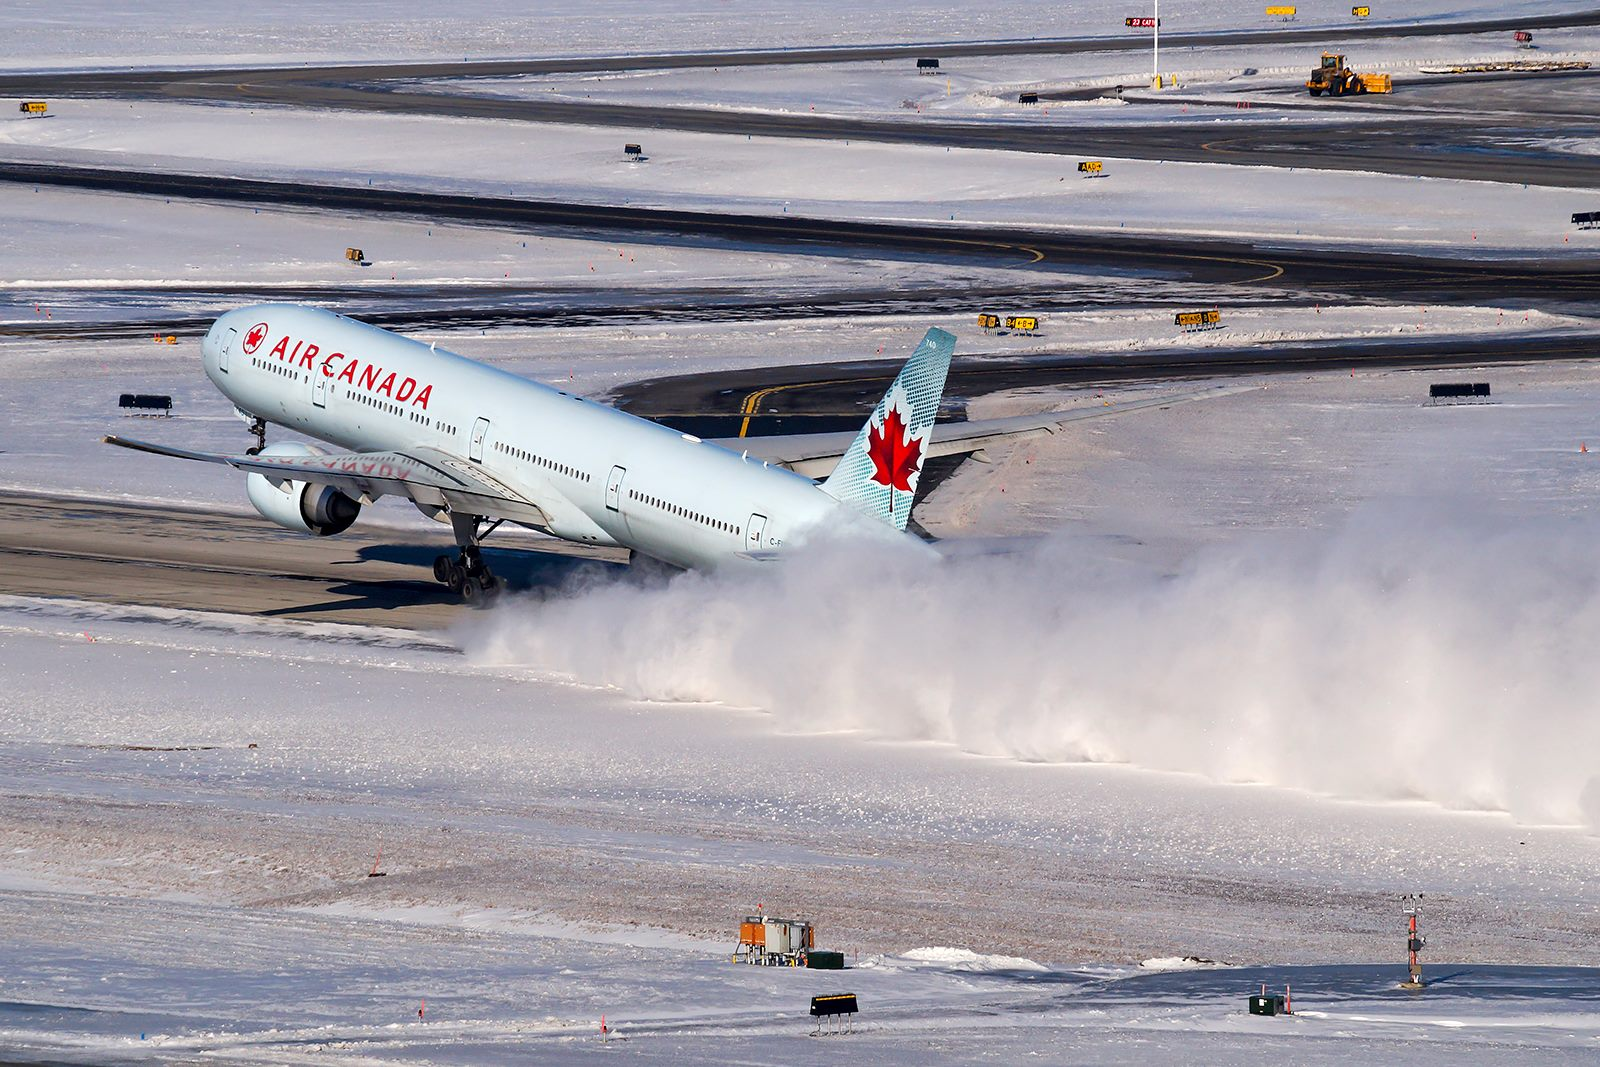 An Air Canada departs Toronto for a Trans-Polar flight to the Orient. Photo submitted by David Brook